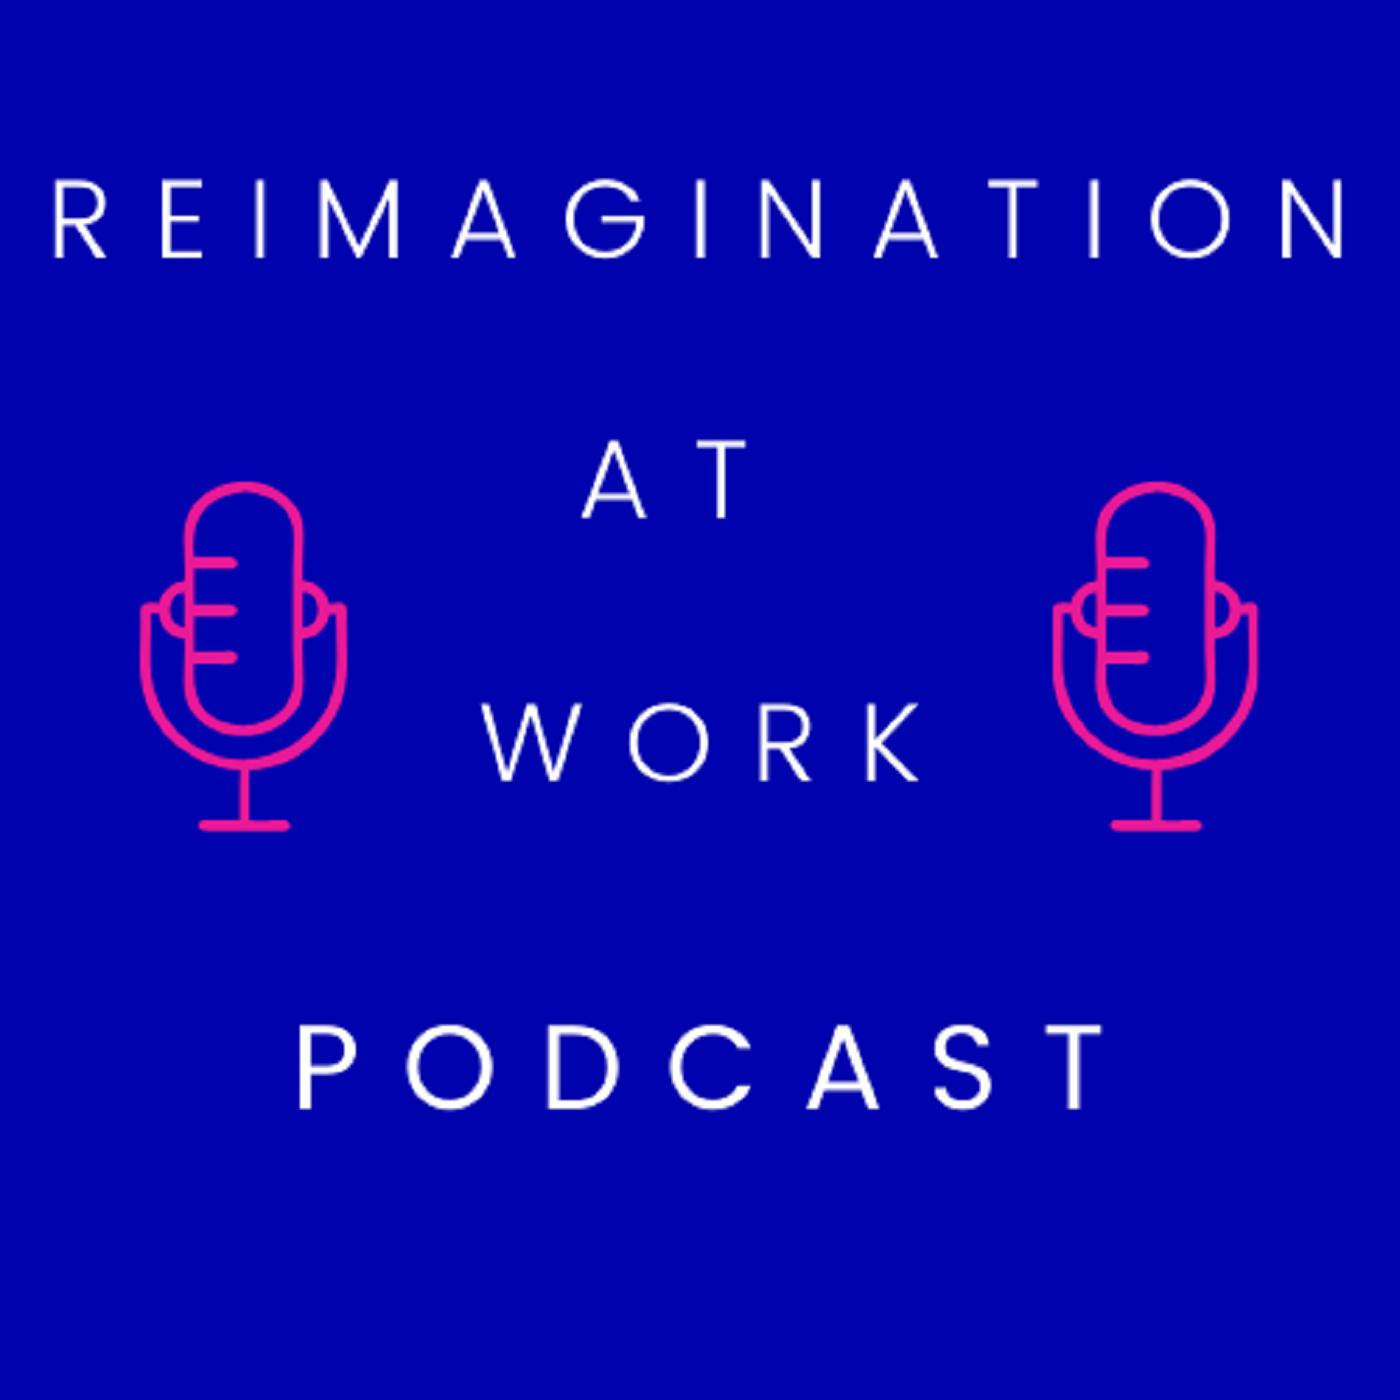 Reimagination At Work by Watch This Sp_ce